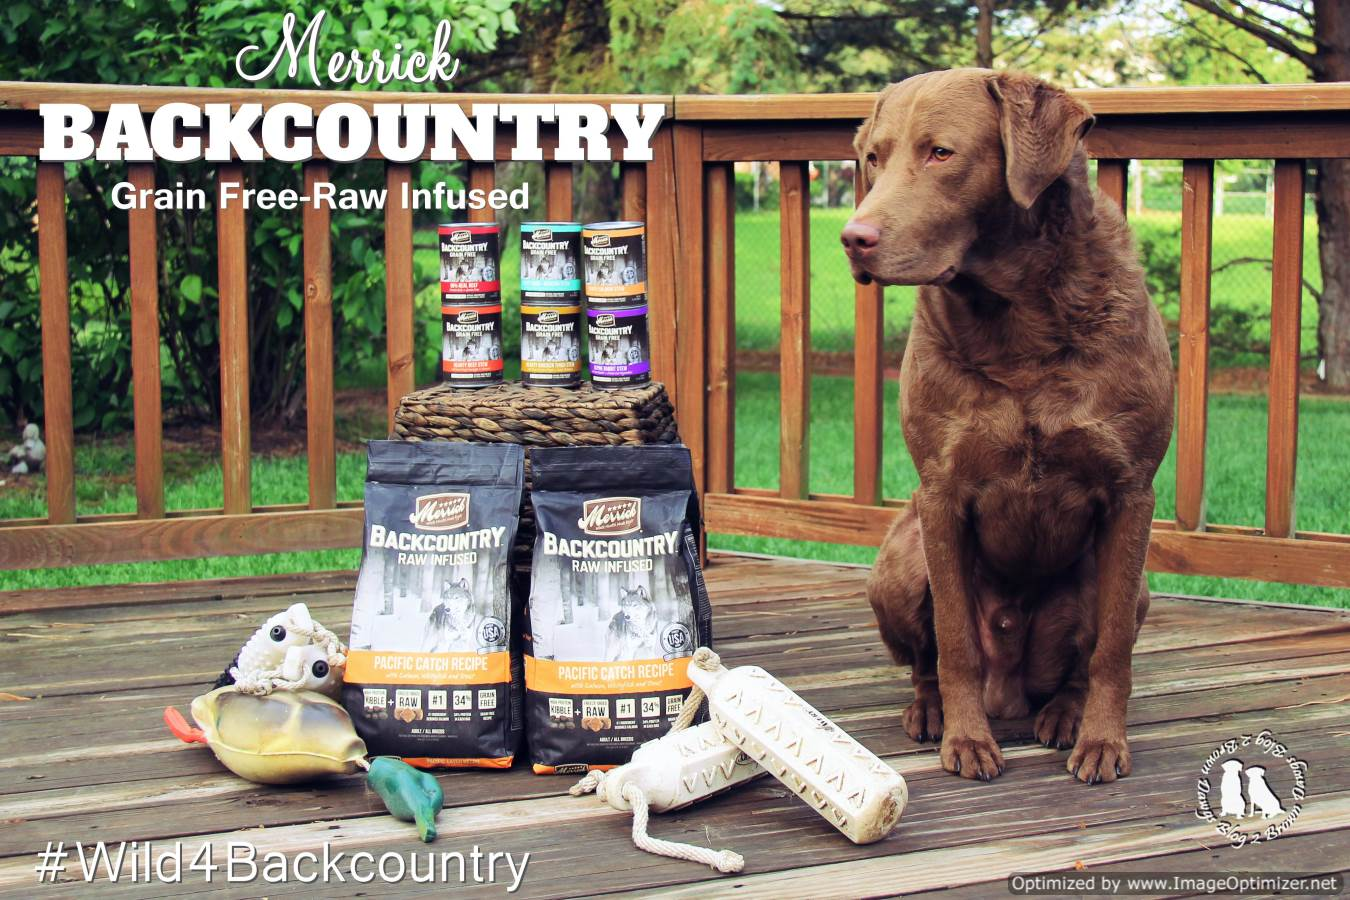 Merrick's Backcountry Grain Free Raw Infused Dog Food